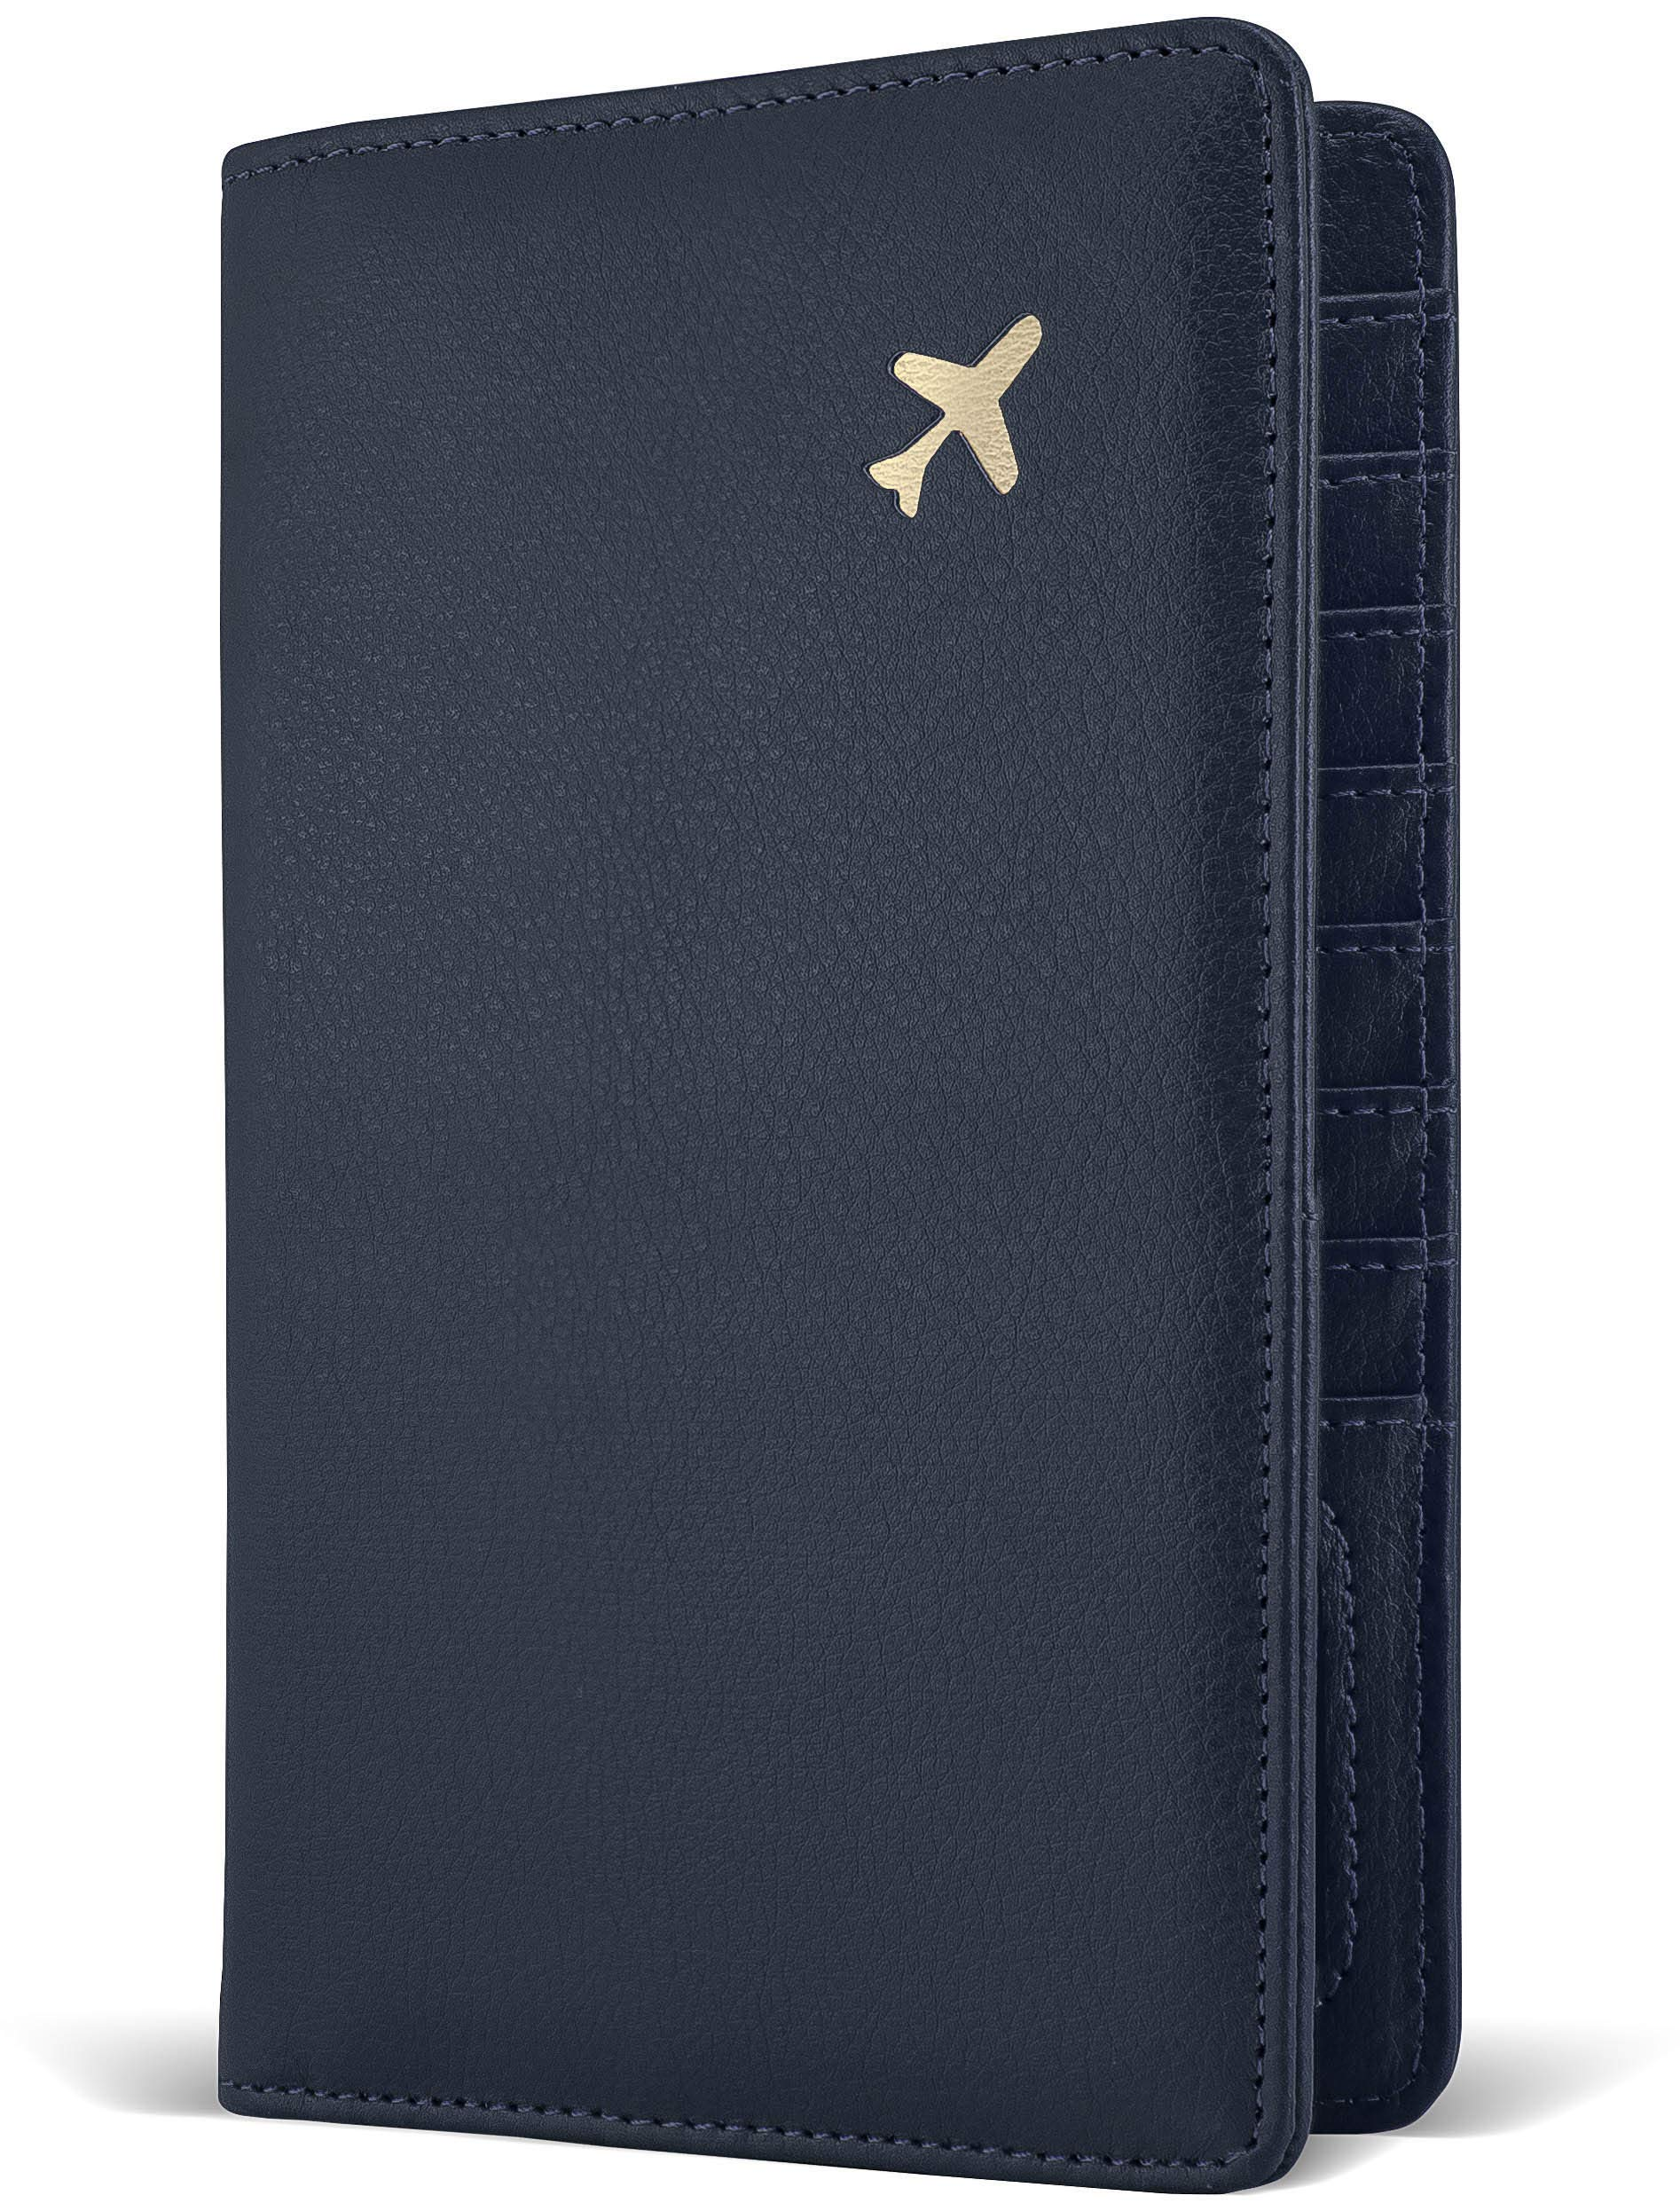 Passport Holder by POCKT - RFID Blocking Travel Wallet for Safe Trip, Document Organizer + Gift Box | Midnight Navy